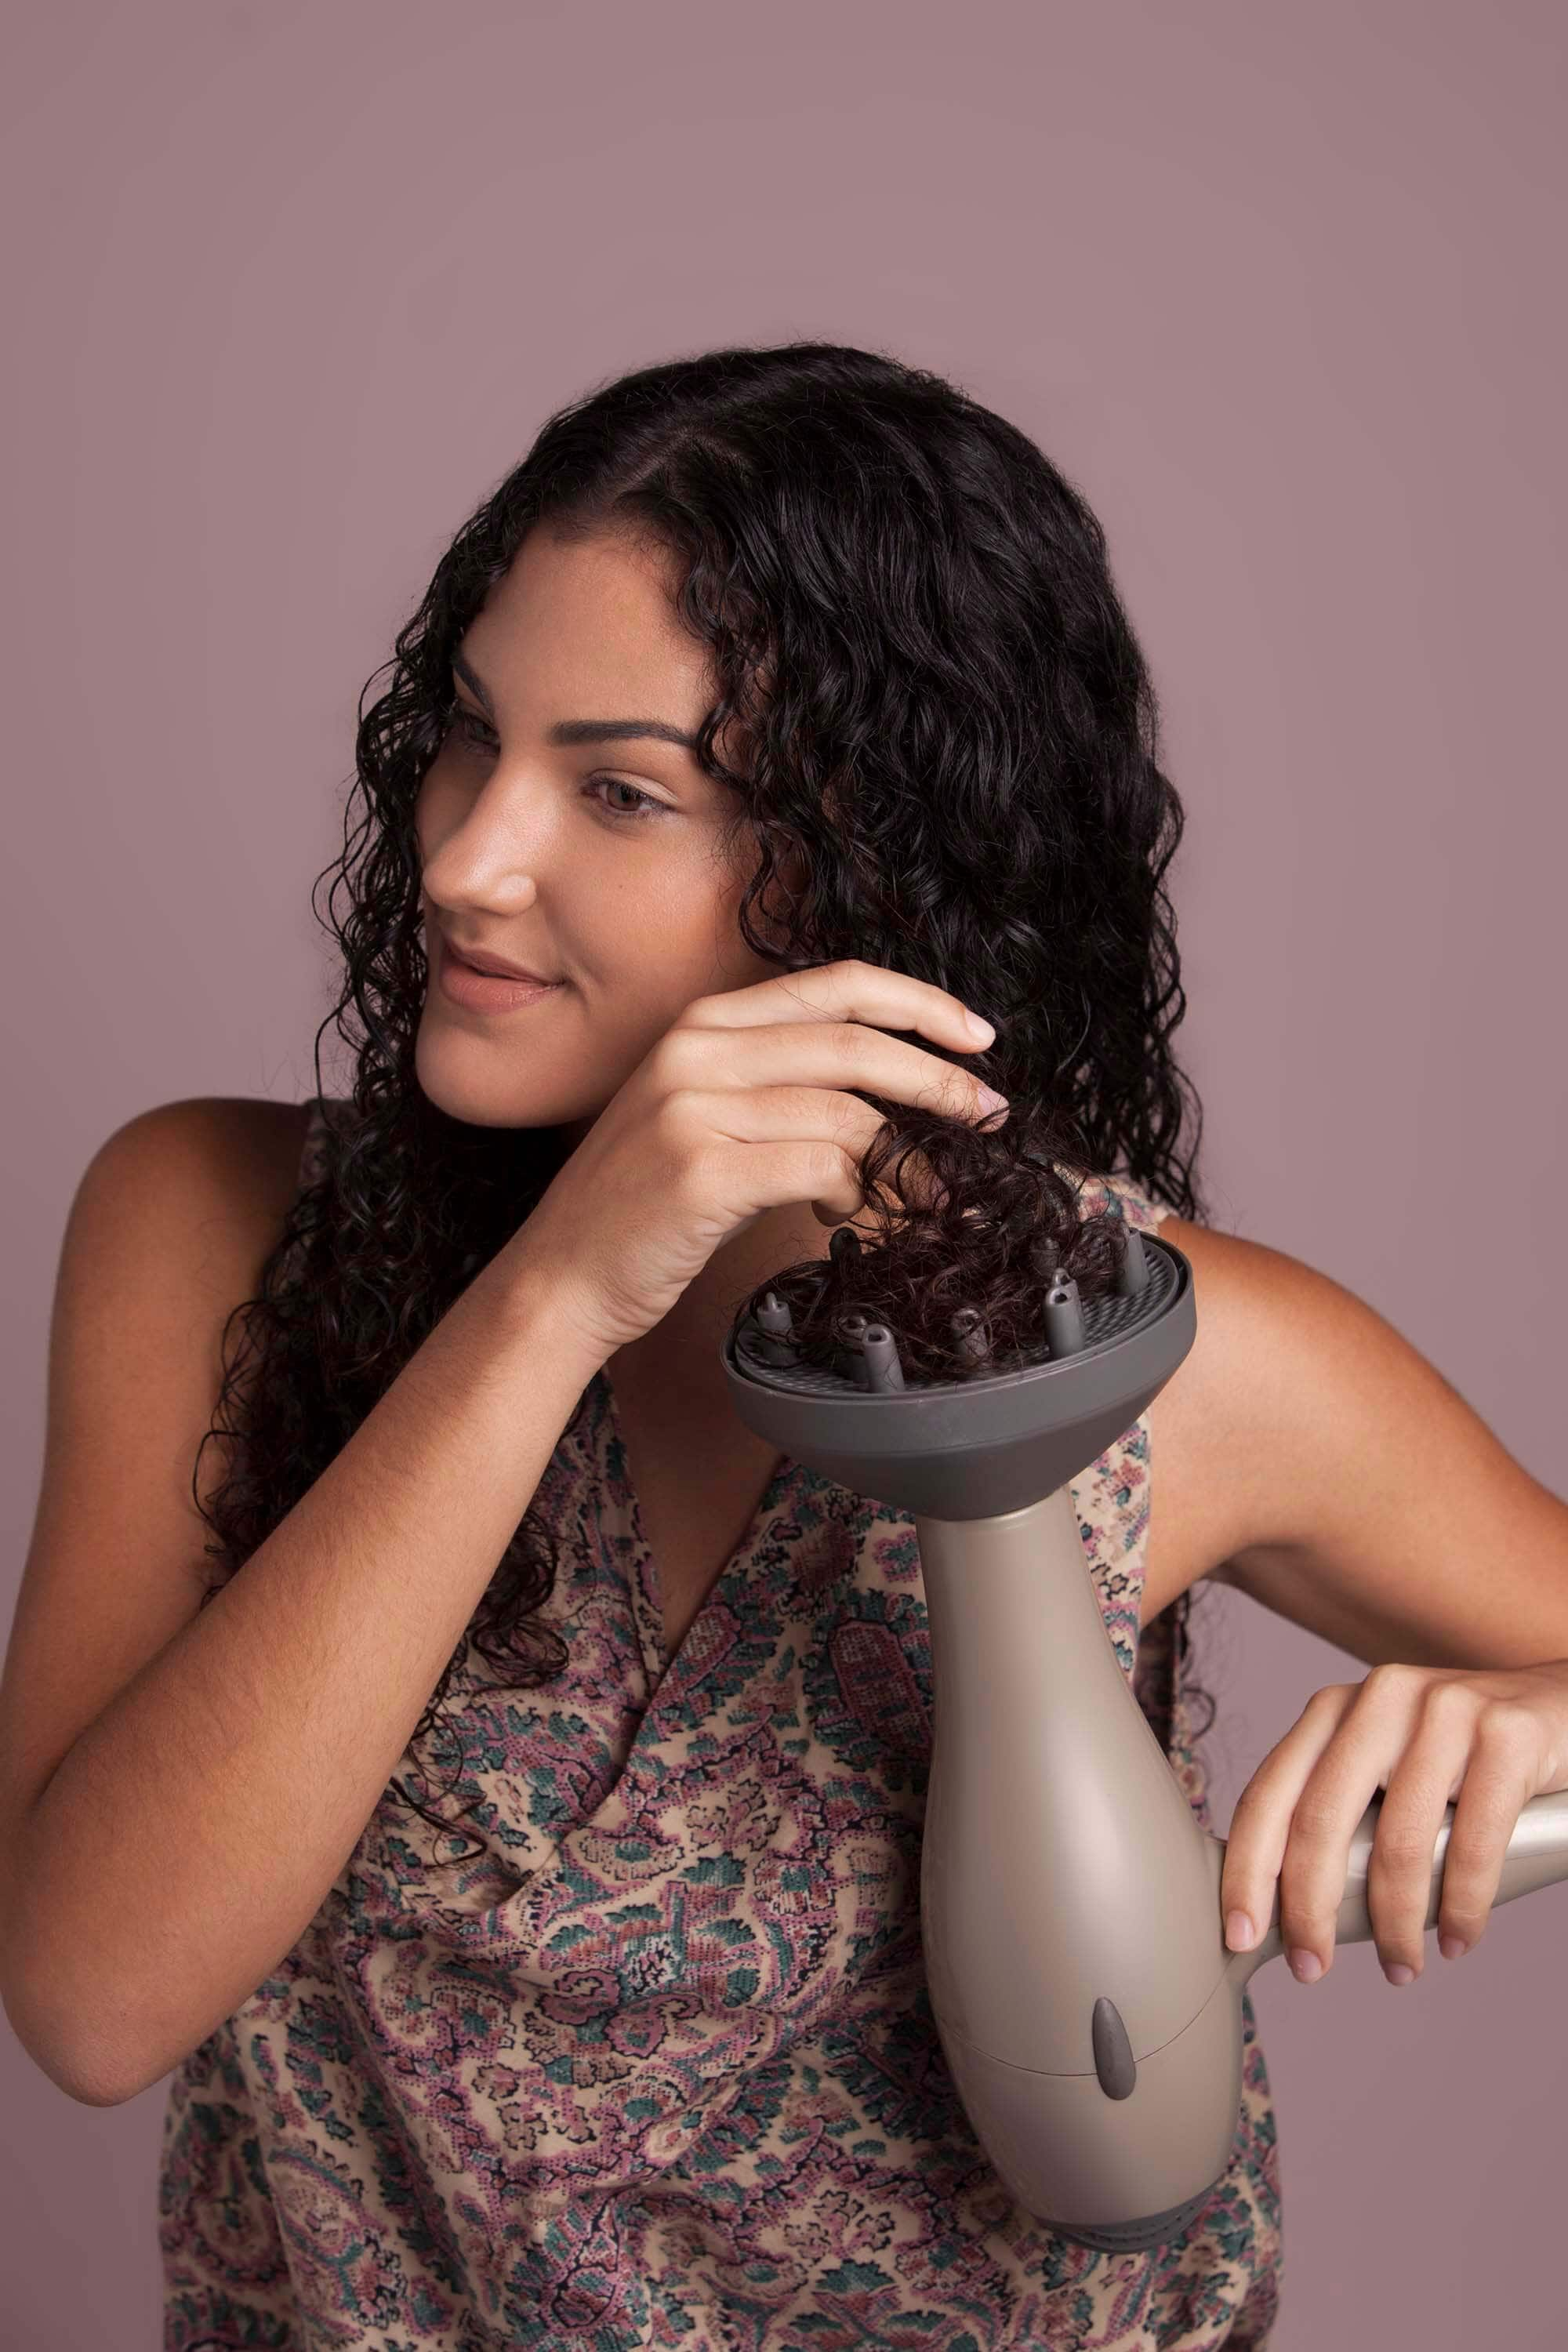 Woman with brunette curly hair putting her hair into a hairdryer diffuser